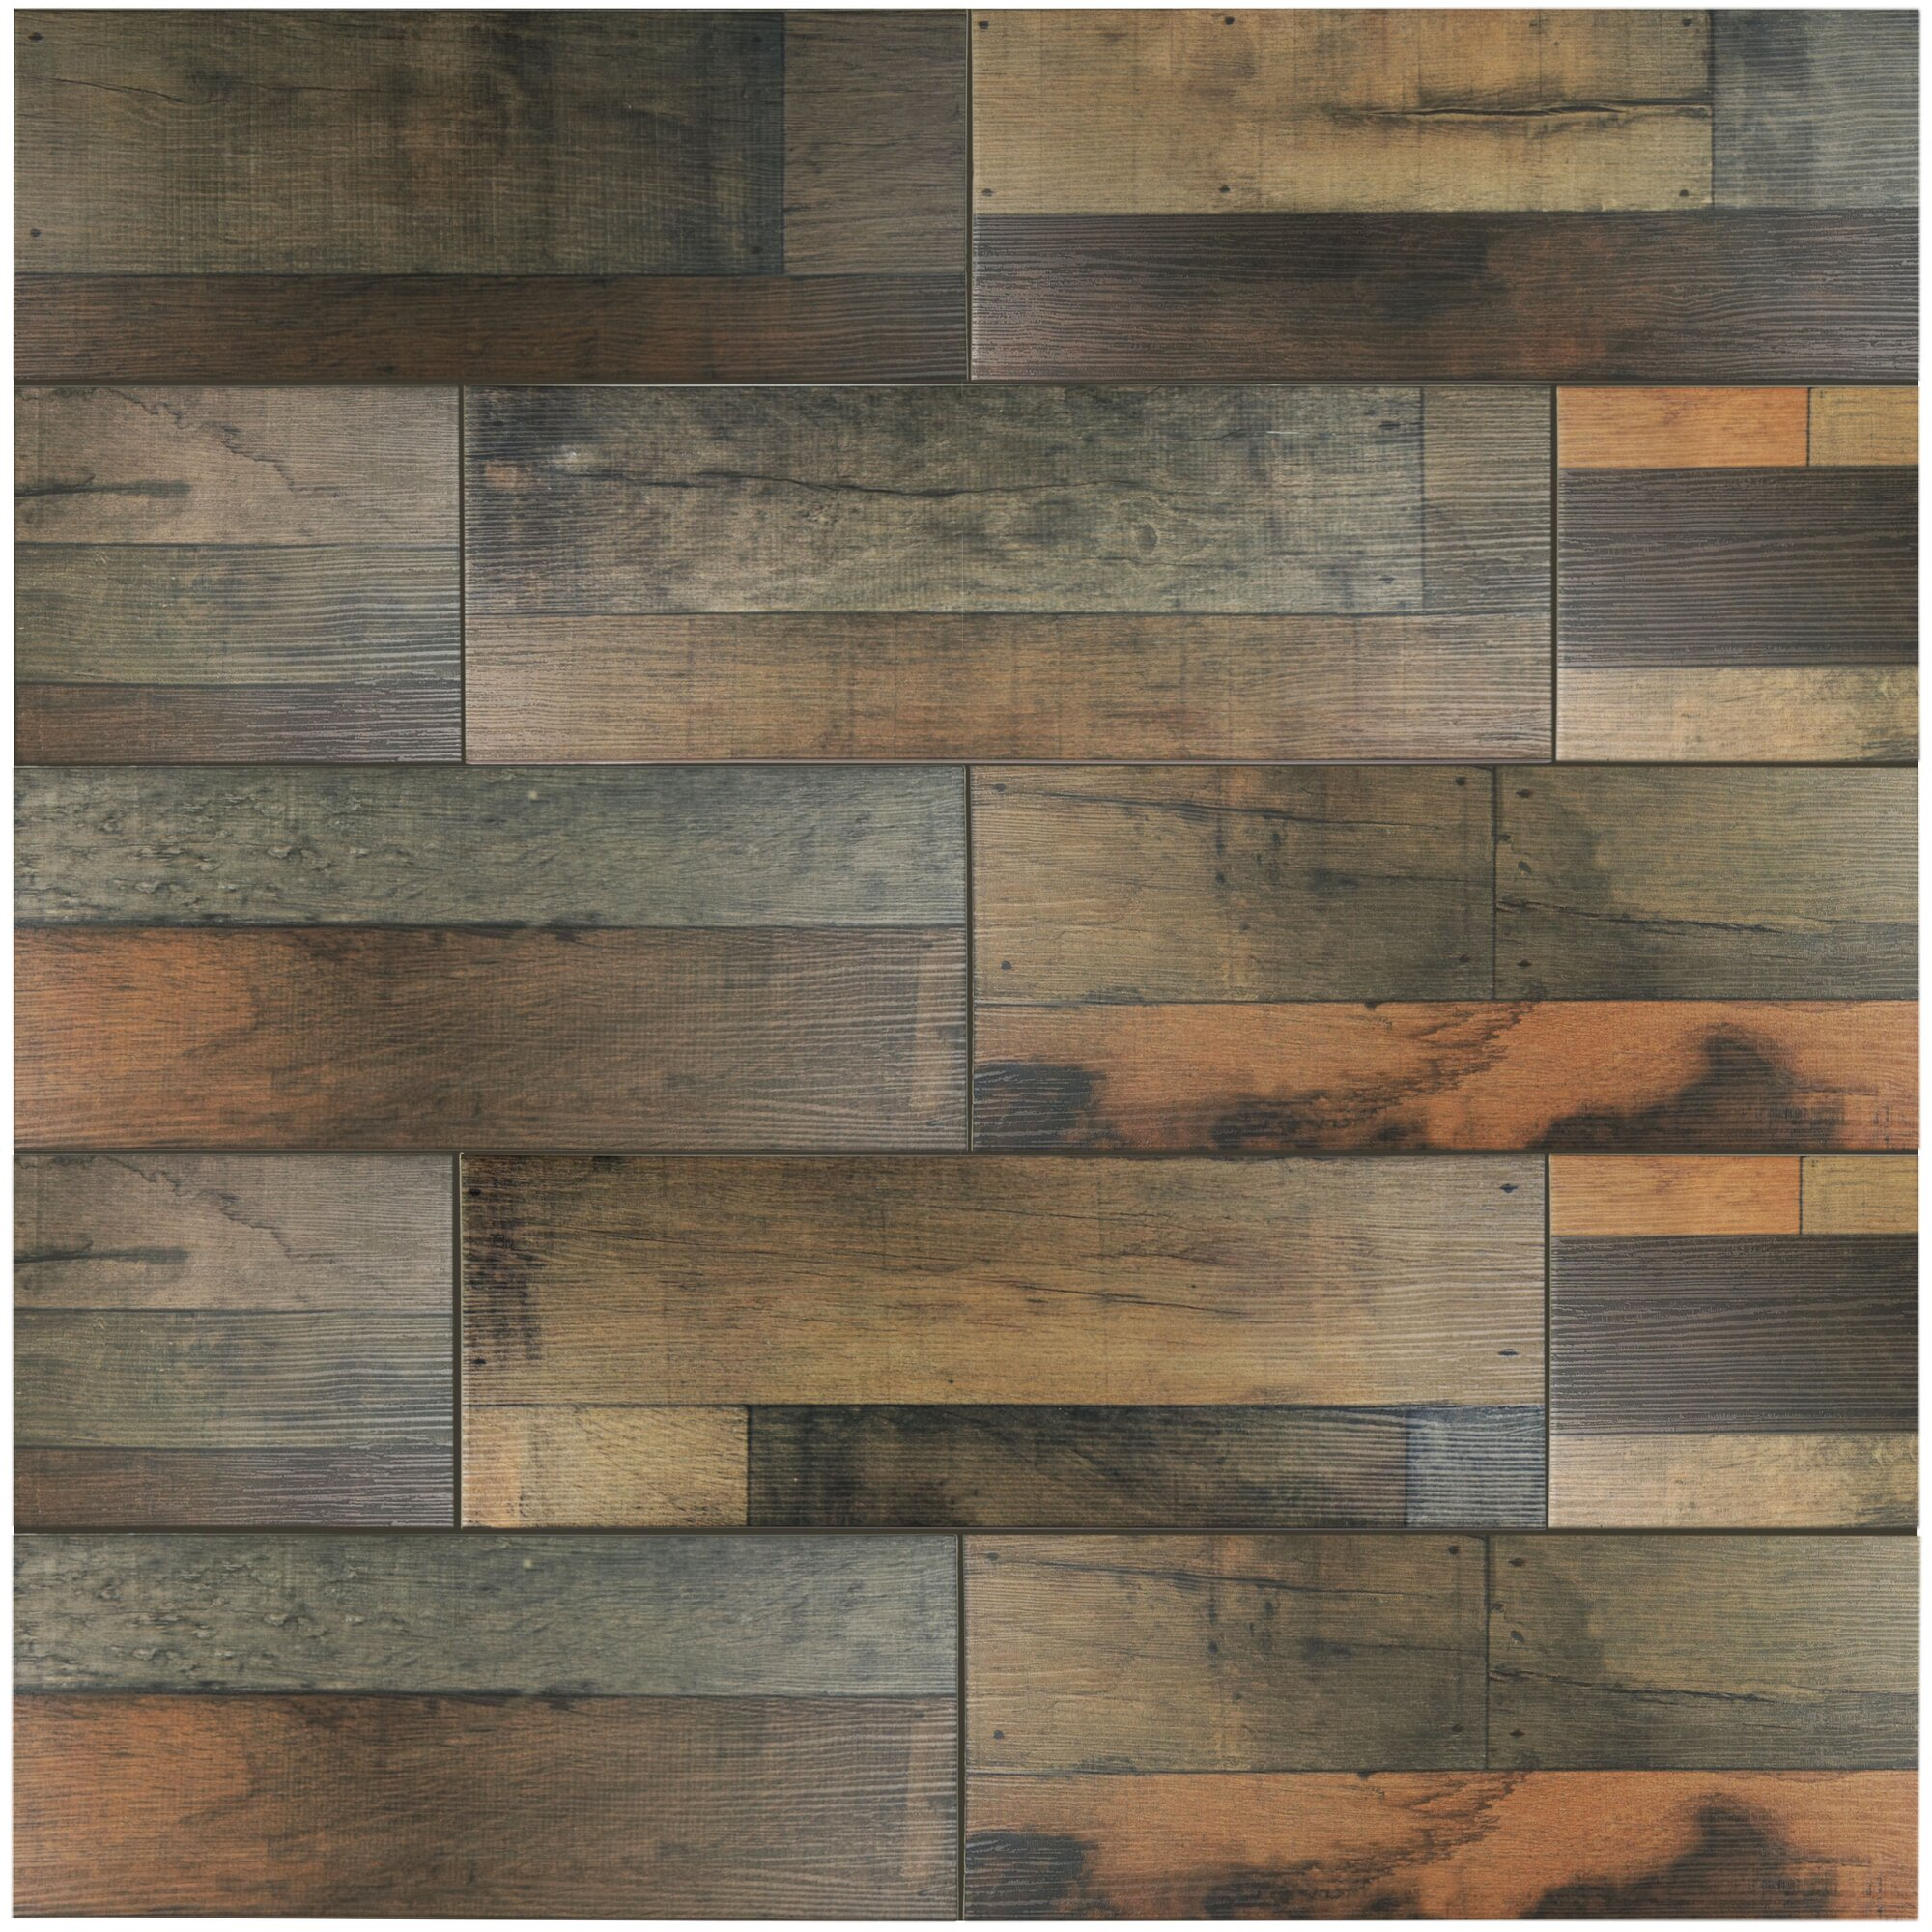 Floor tile patterns 12x24 flooring ideas and inspiration 12x12 floor tile patterns techieblogie info dailygadgetfo Gallery